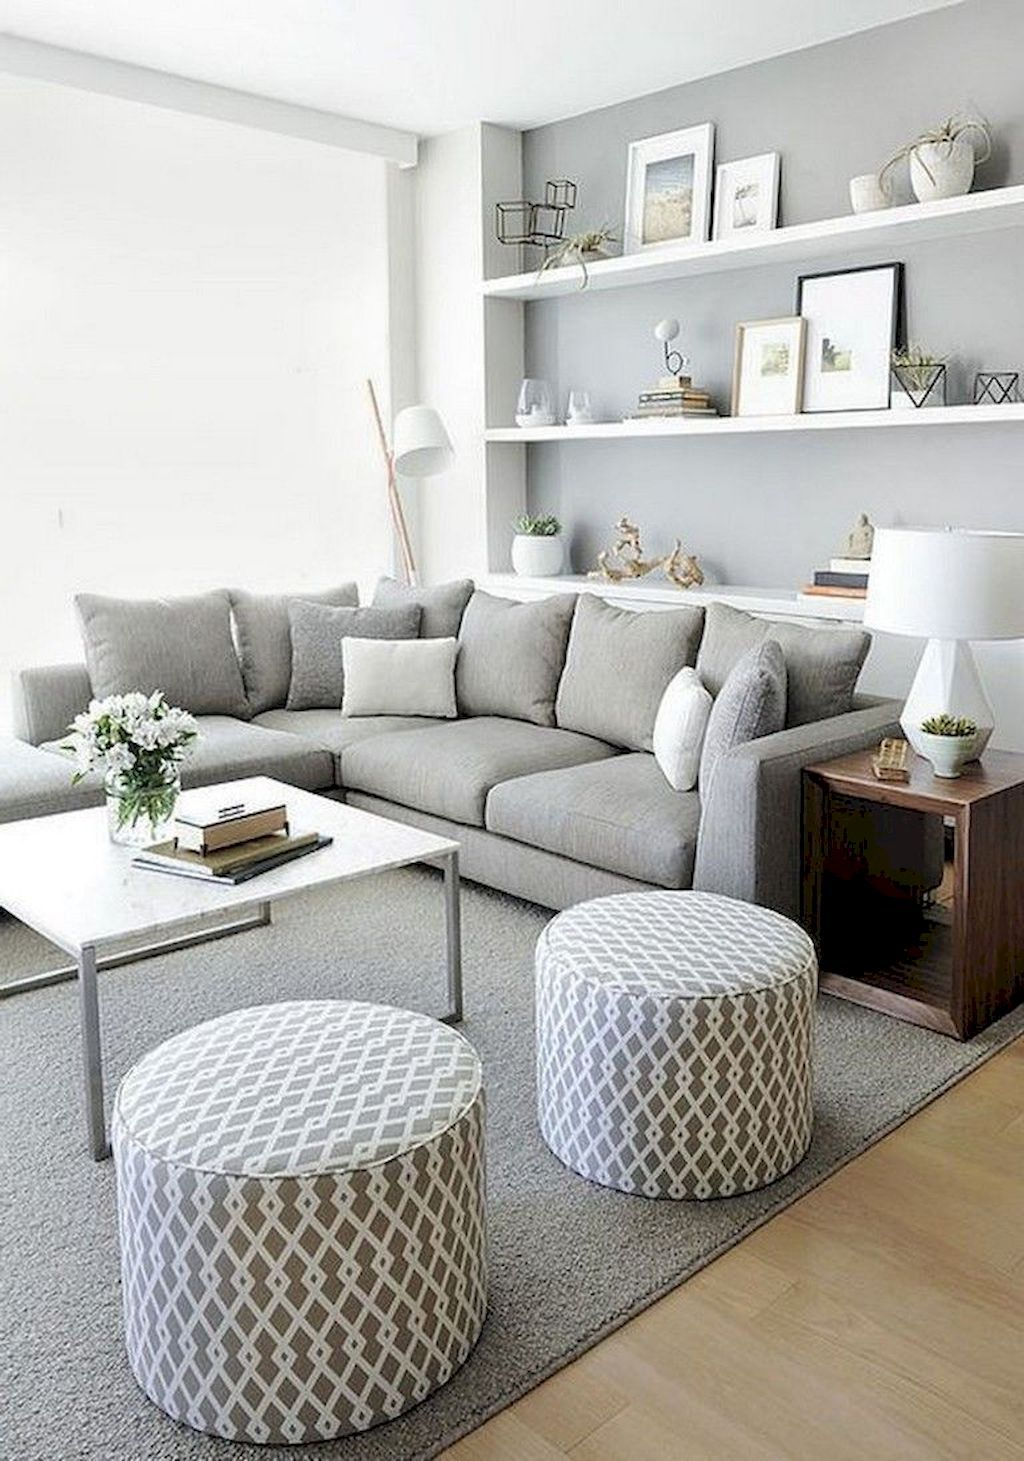 70 Best Modern Small Living Room Decor Ideas #smallapartmentlivingroom